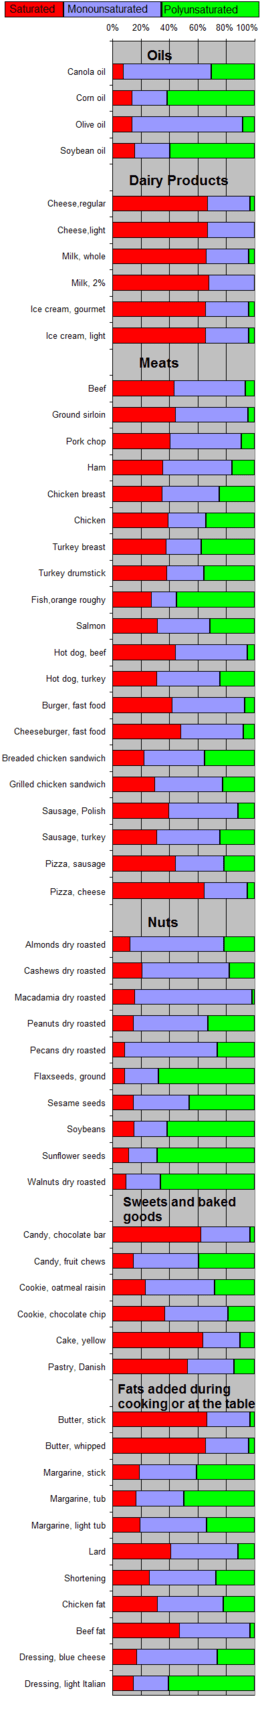 Fat composition in foods.png